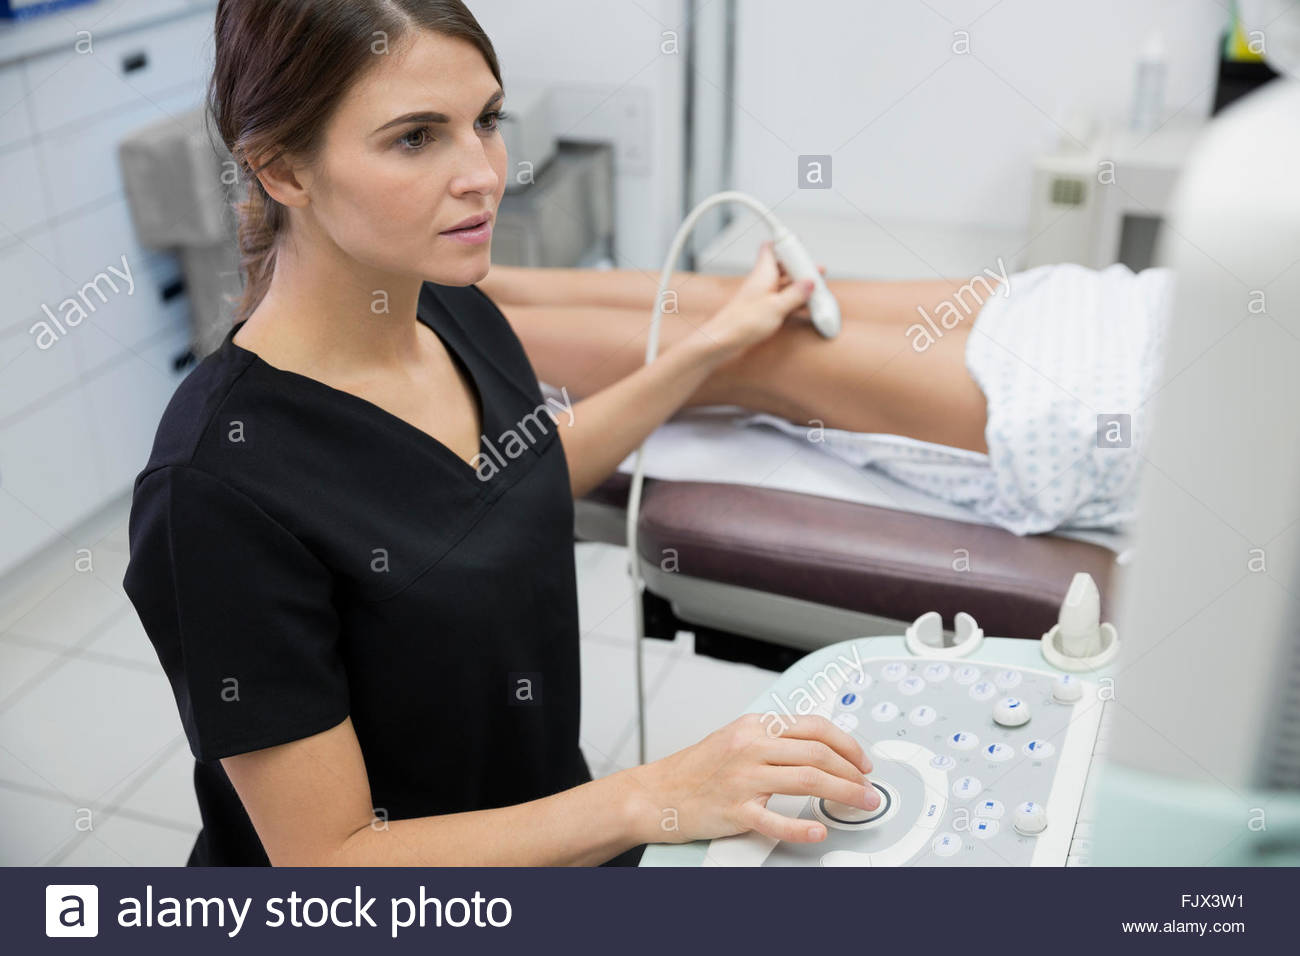 Technician treating varicose veins with ultrasound equipment - Stock Image